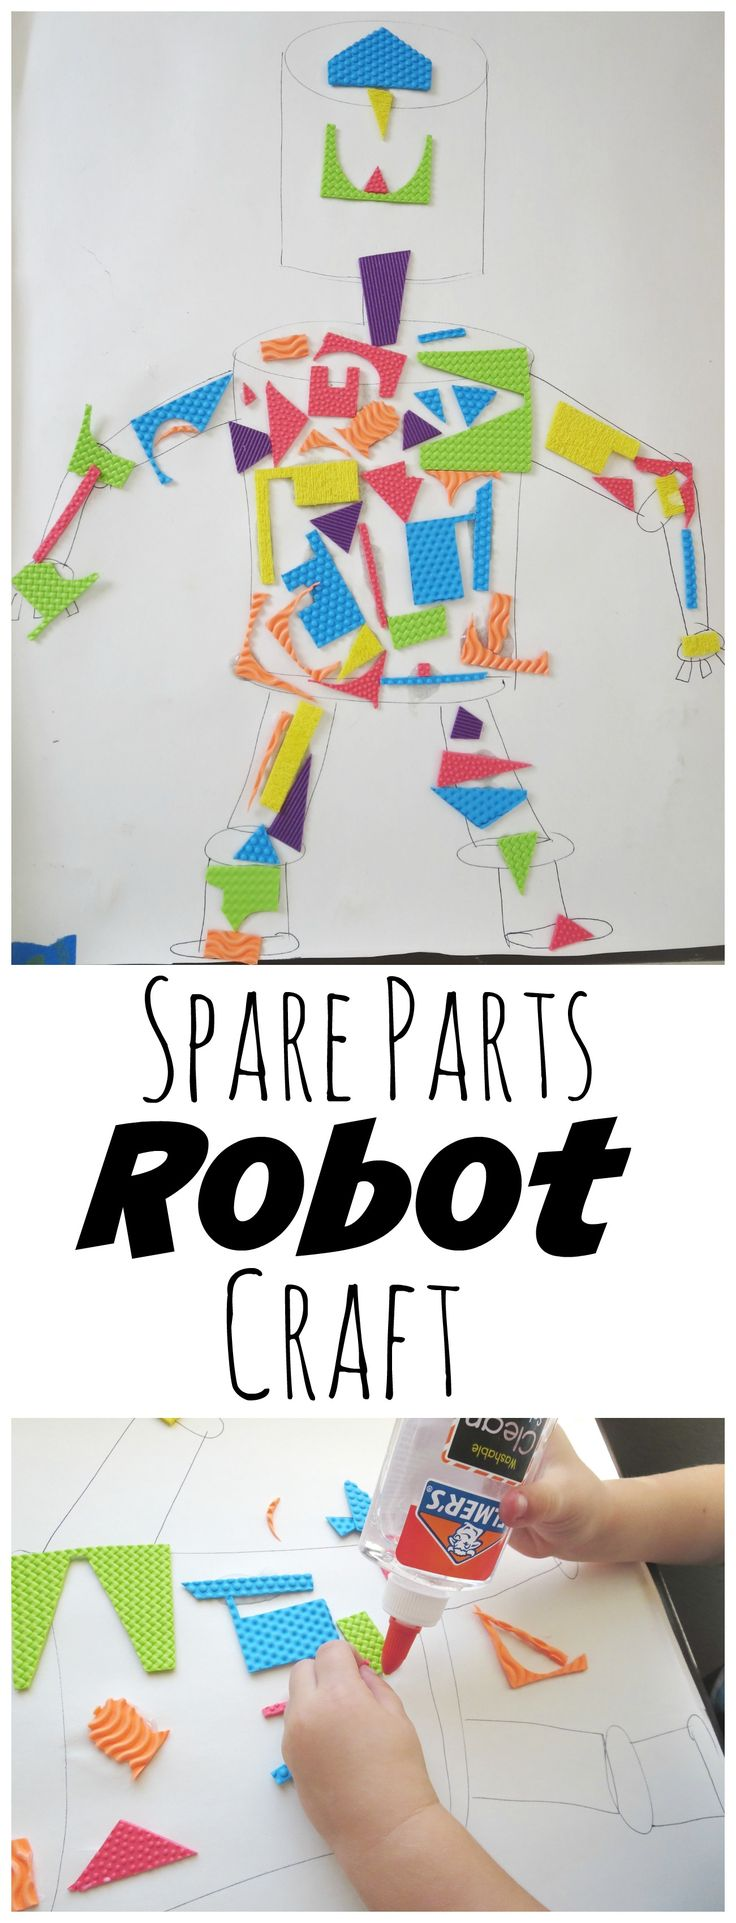 Spare Parts Robot Craft                                                                                                                                                                                 More